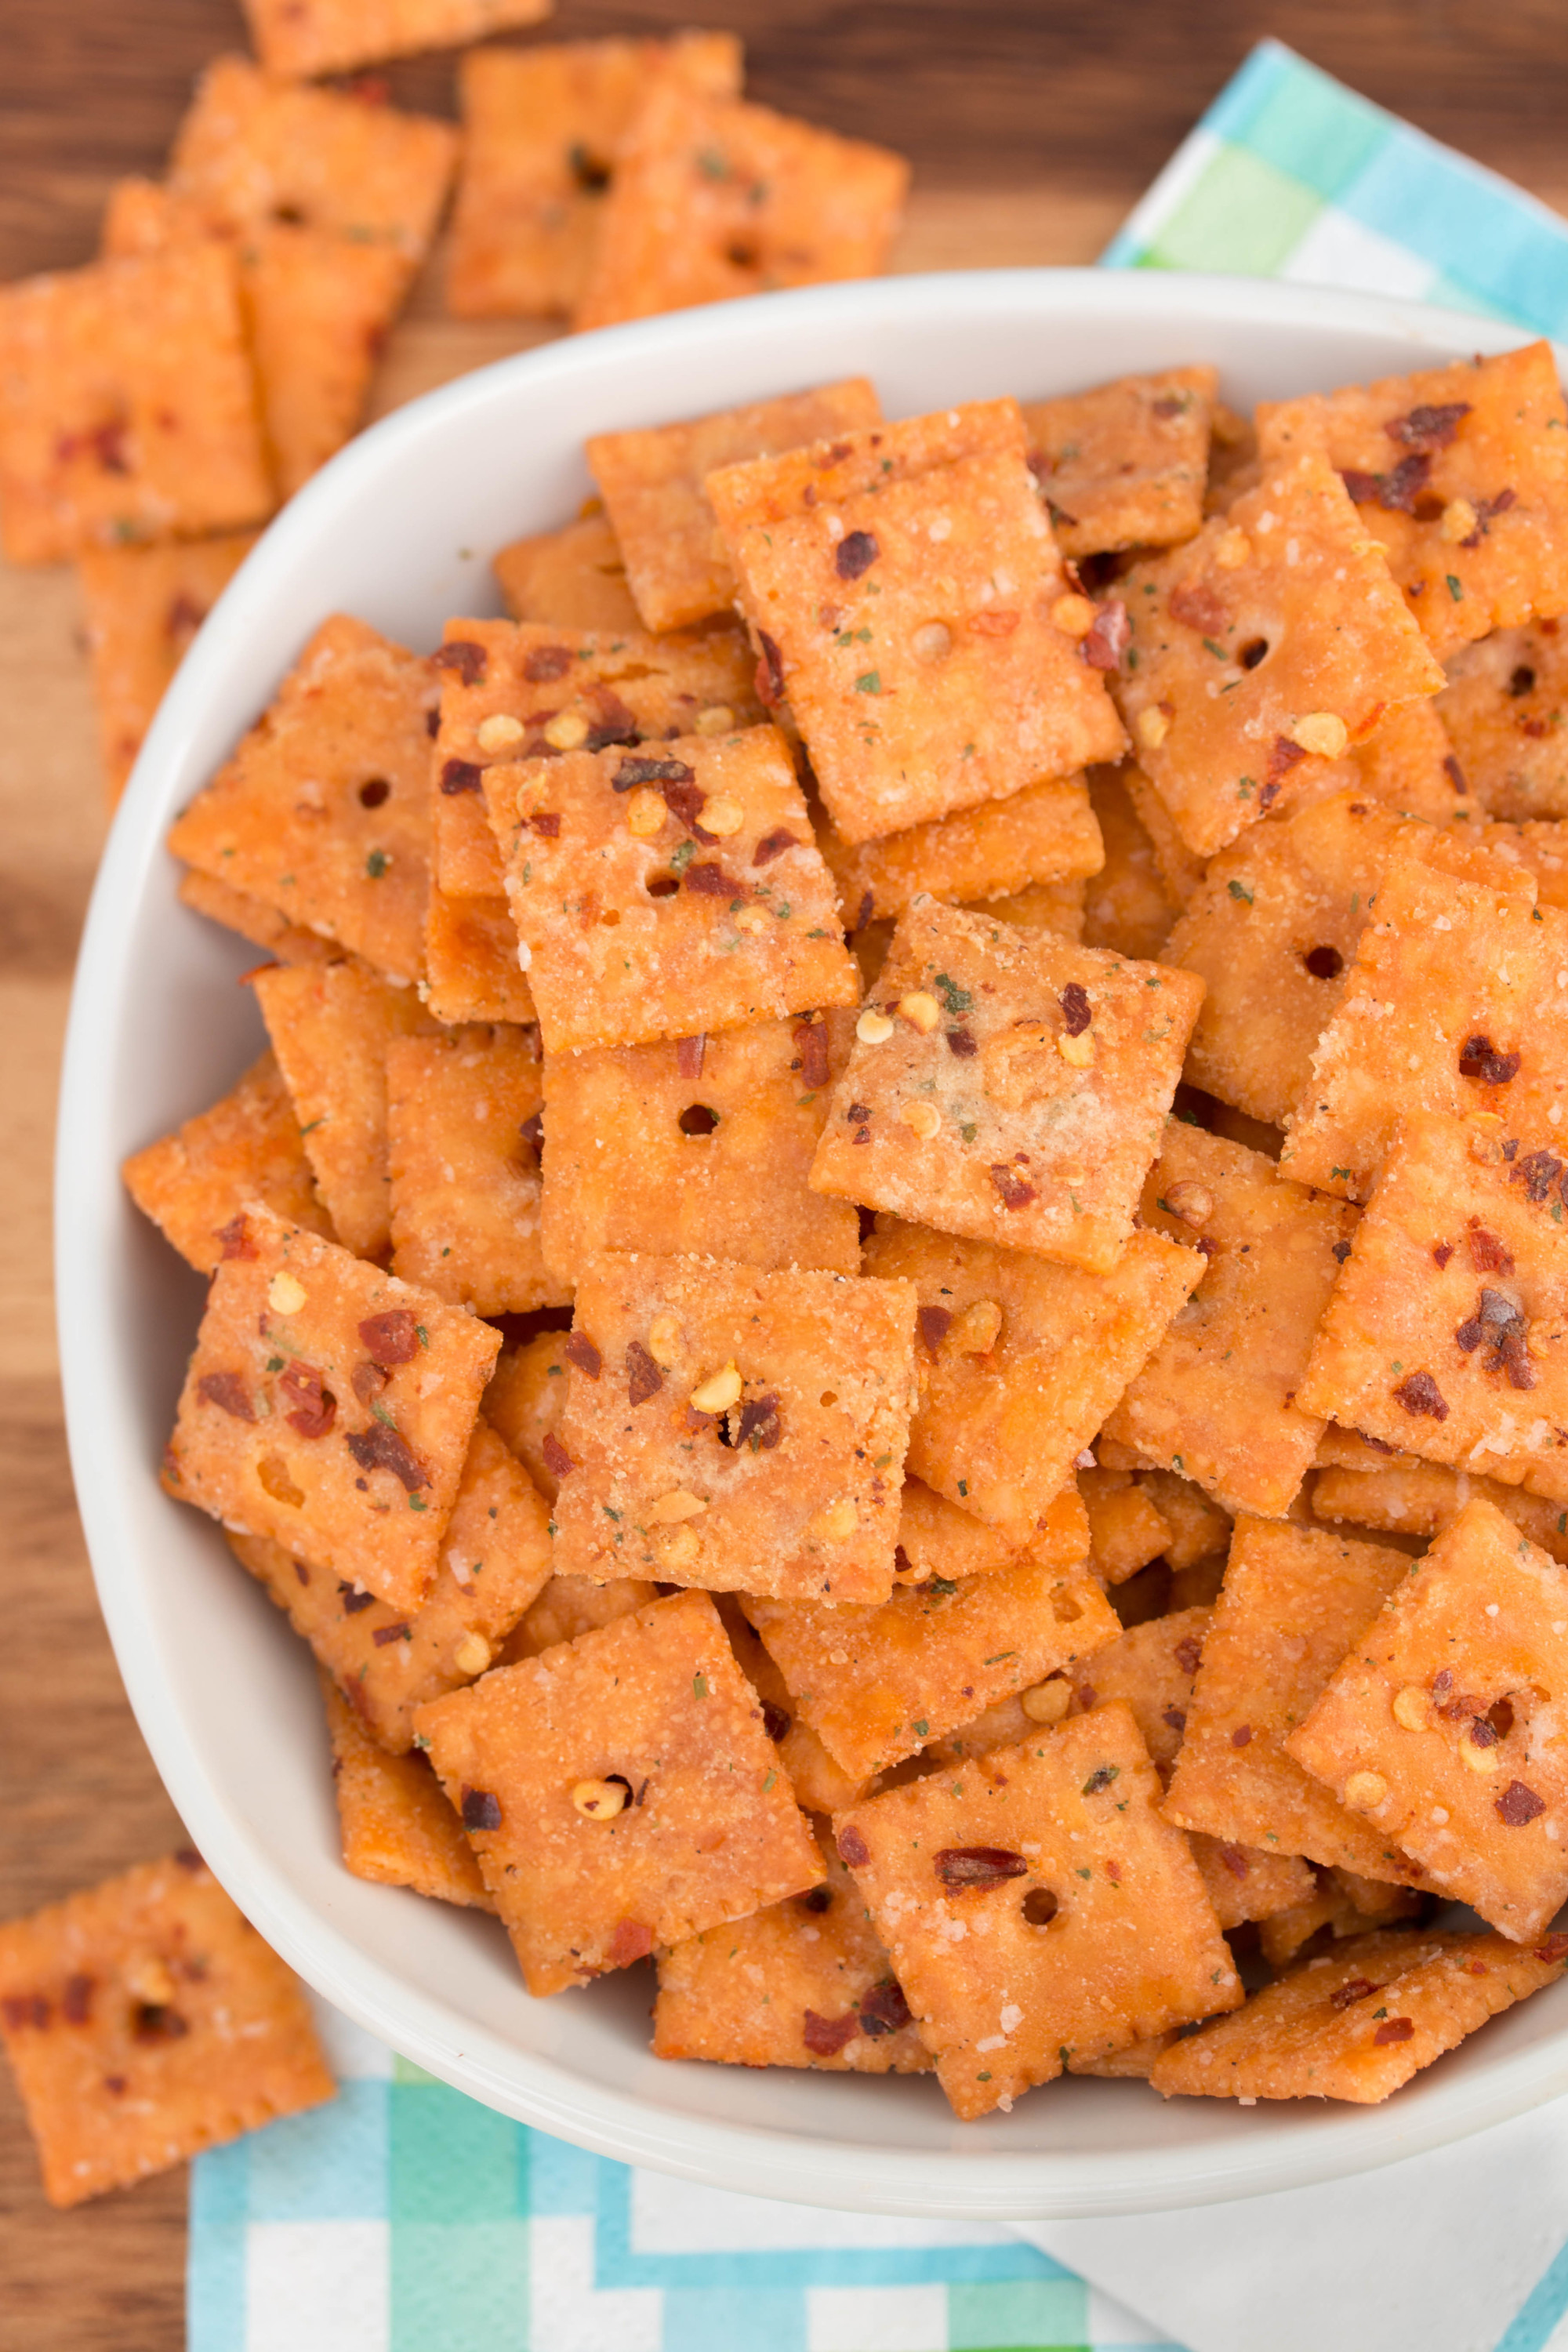 Firecracker-Cheez-Its